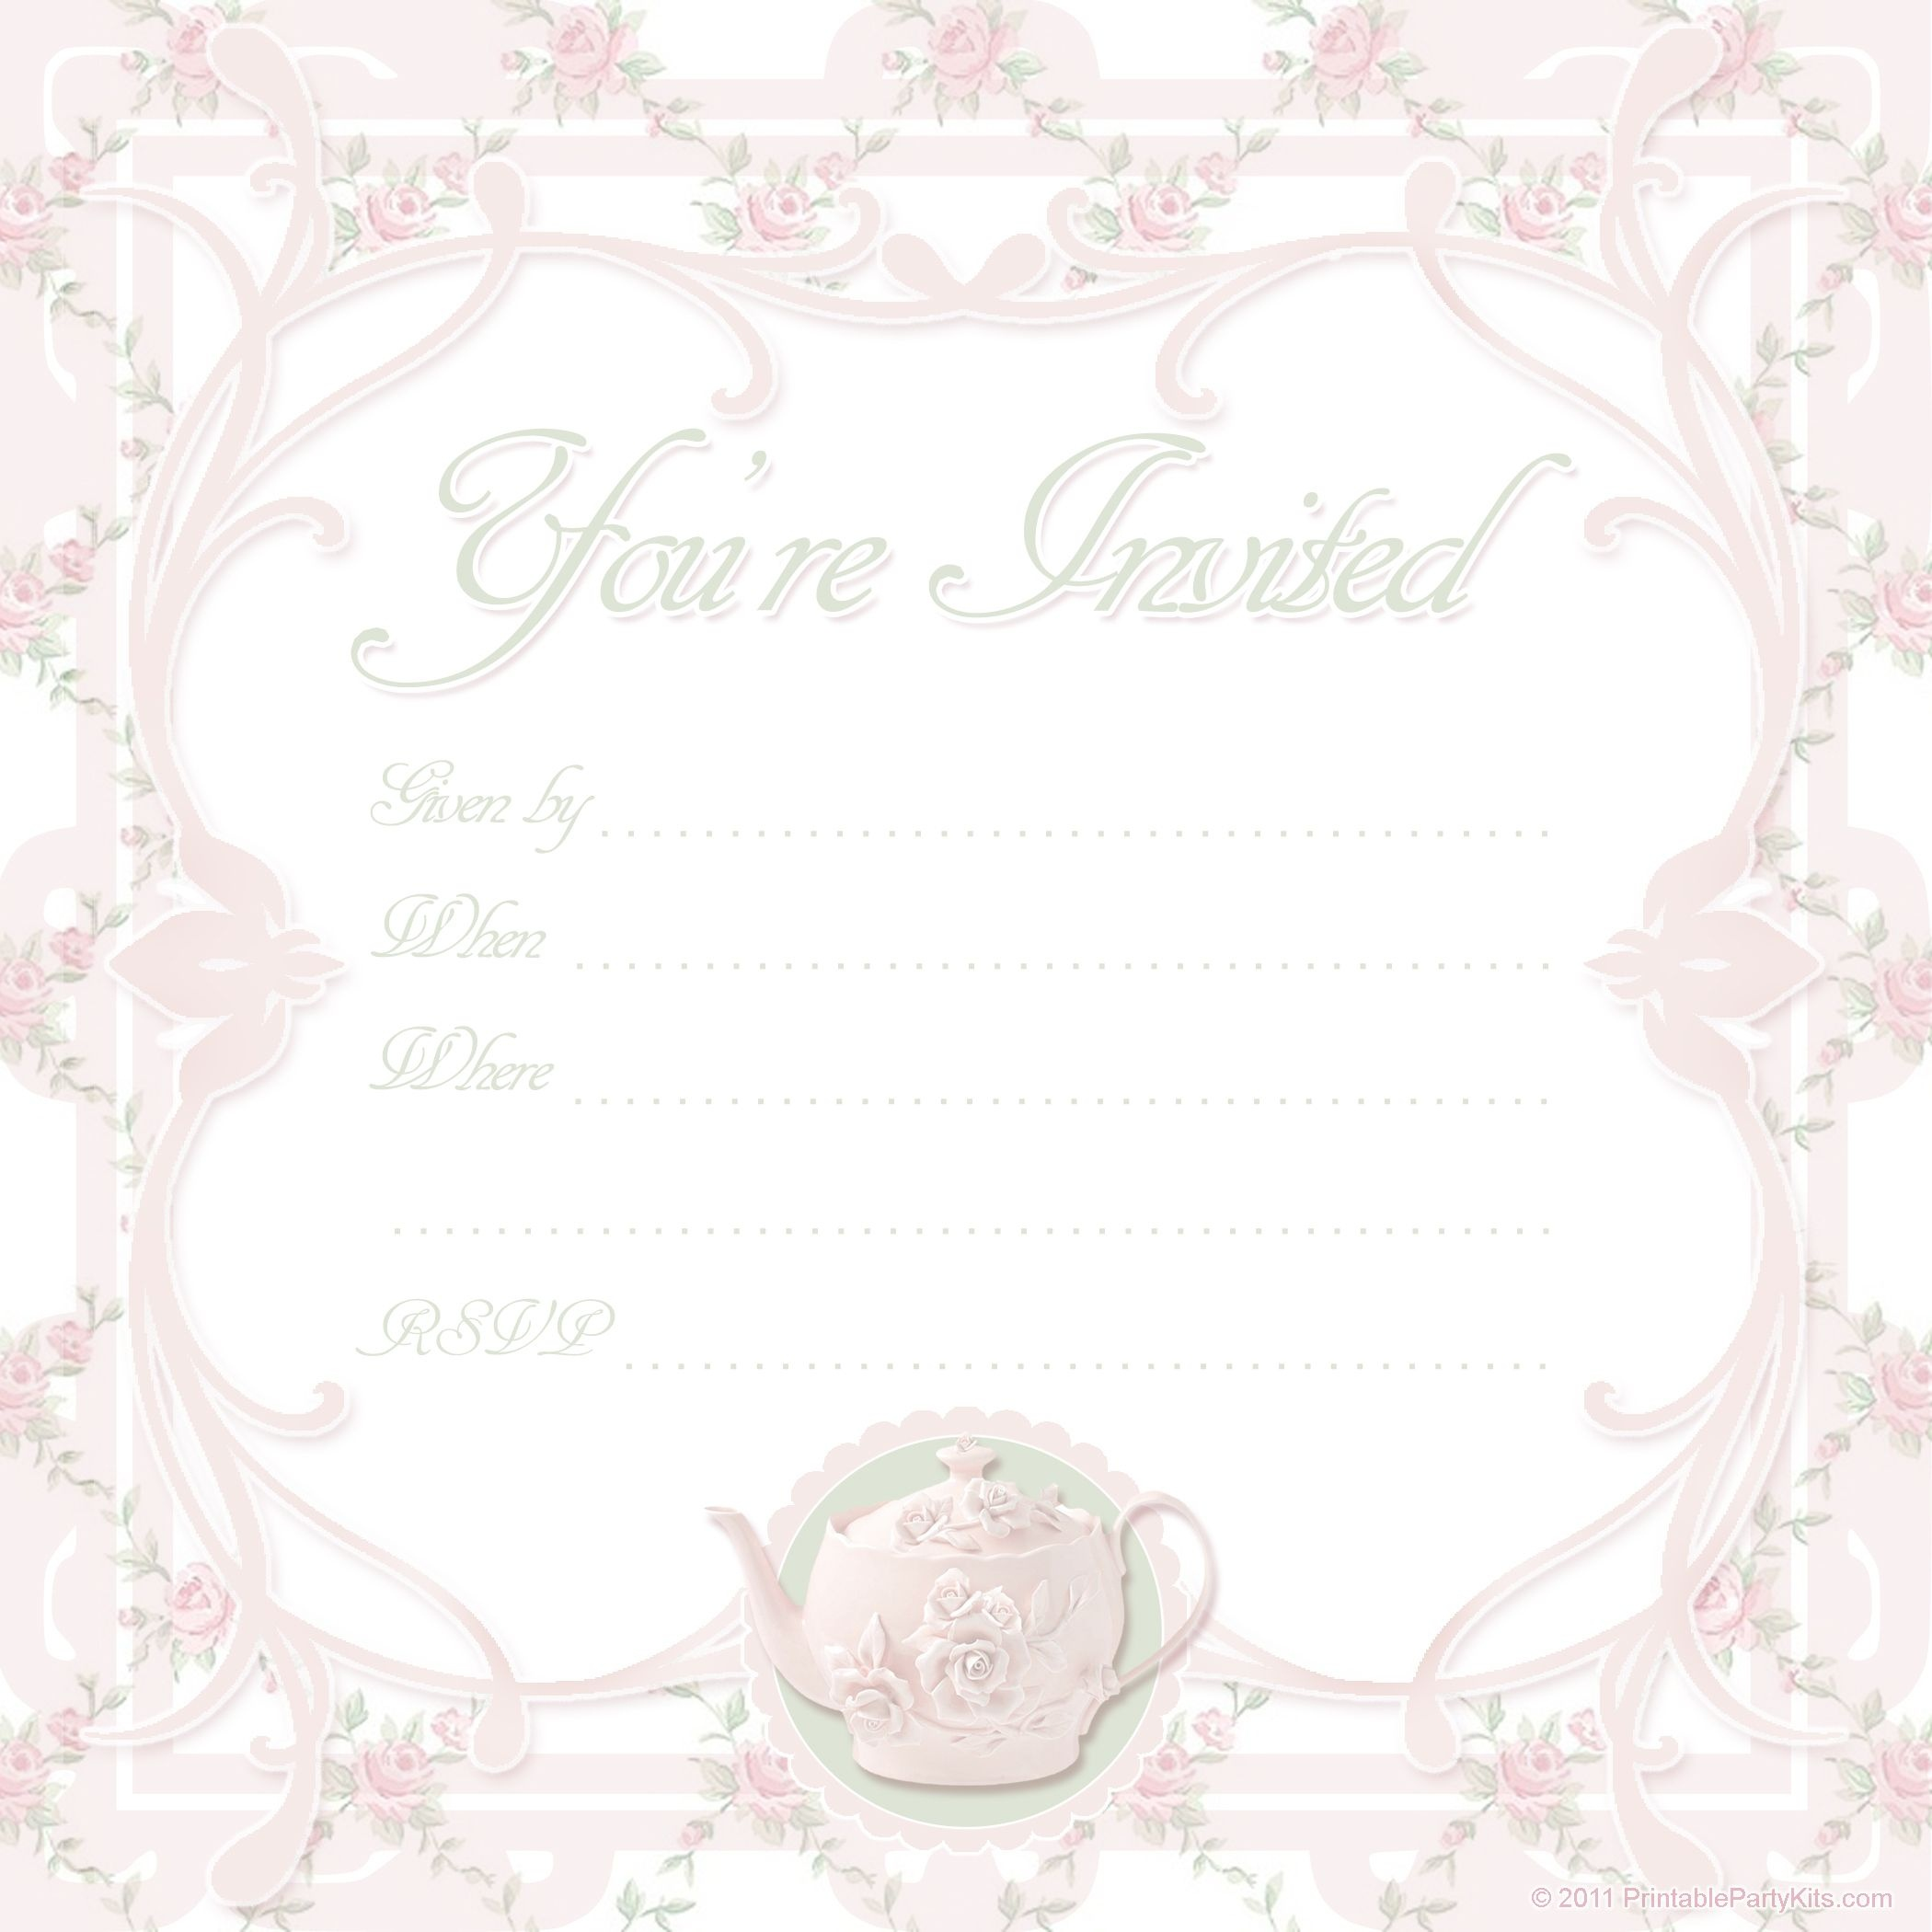 Vintage Tea Party Invitations | Free Printable Tea Party Invite - Free Vintage Tea Party Printables